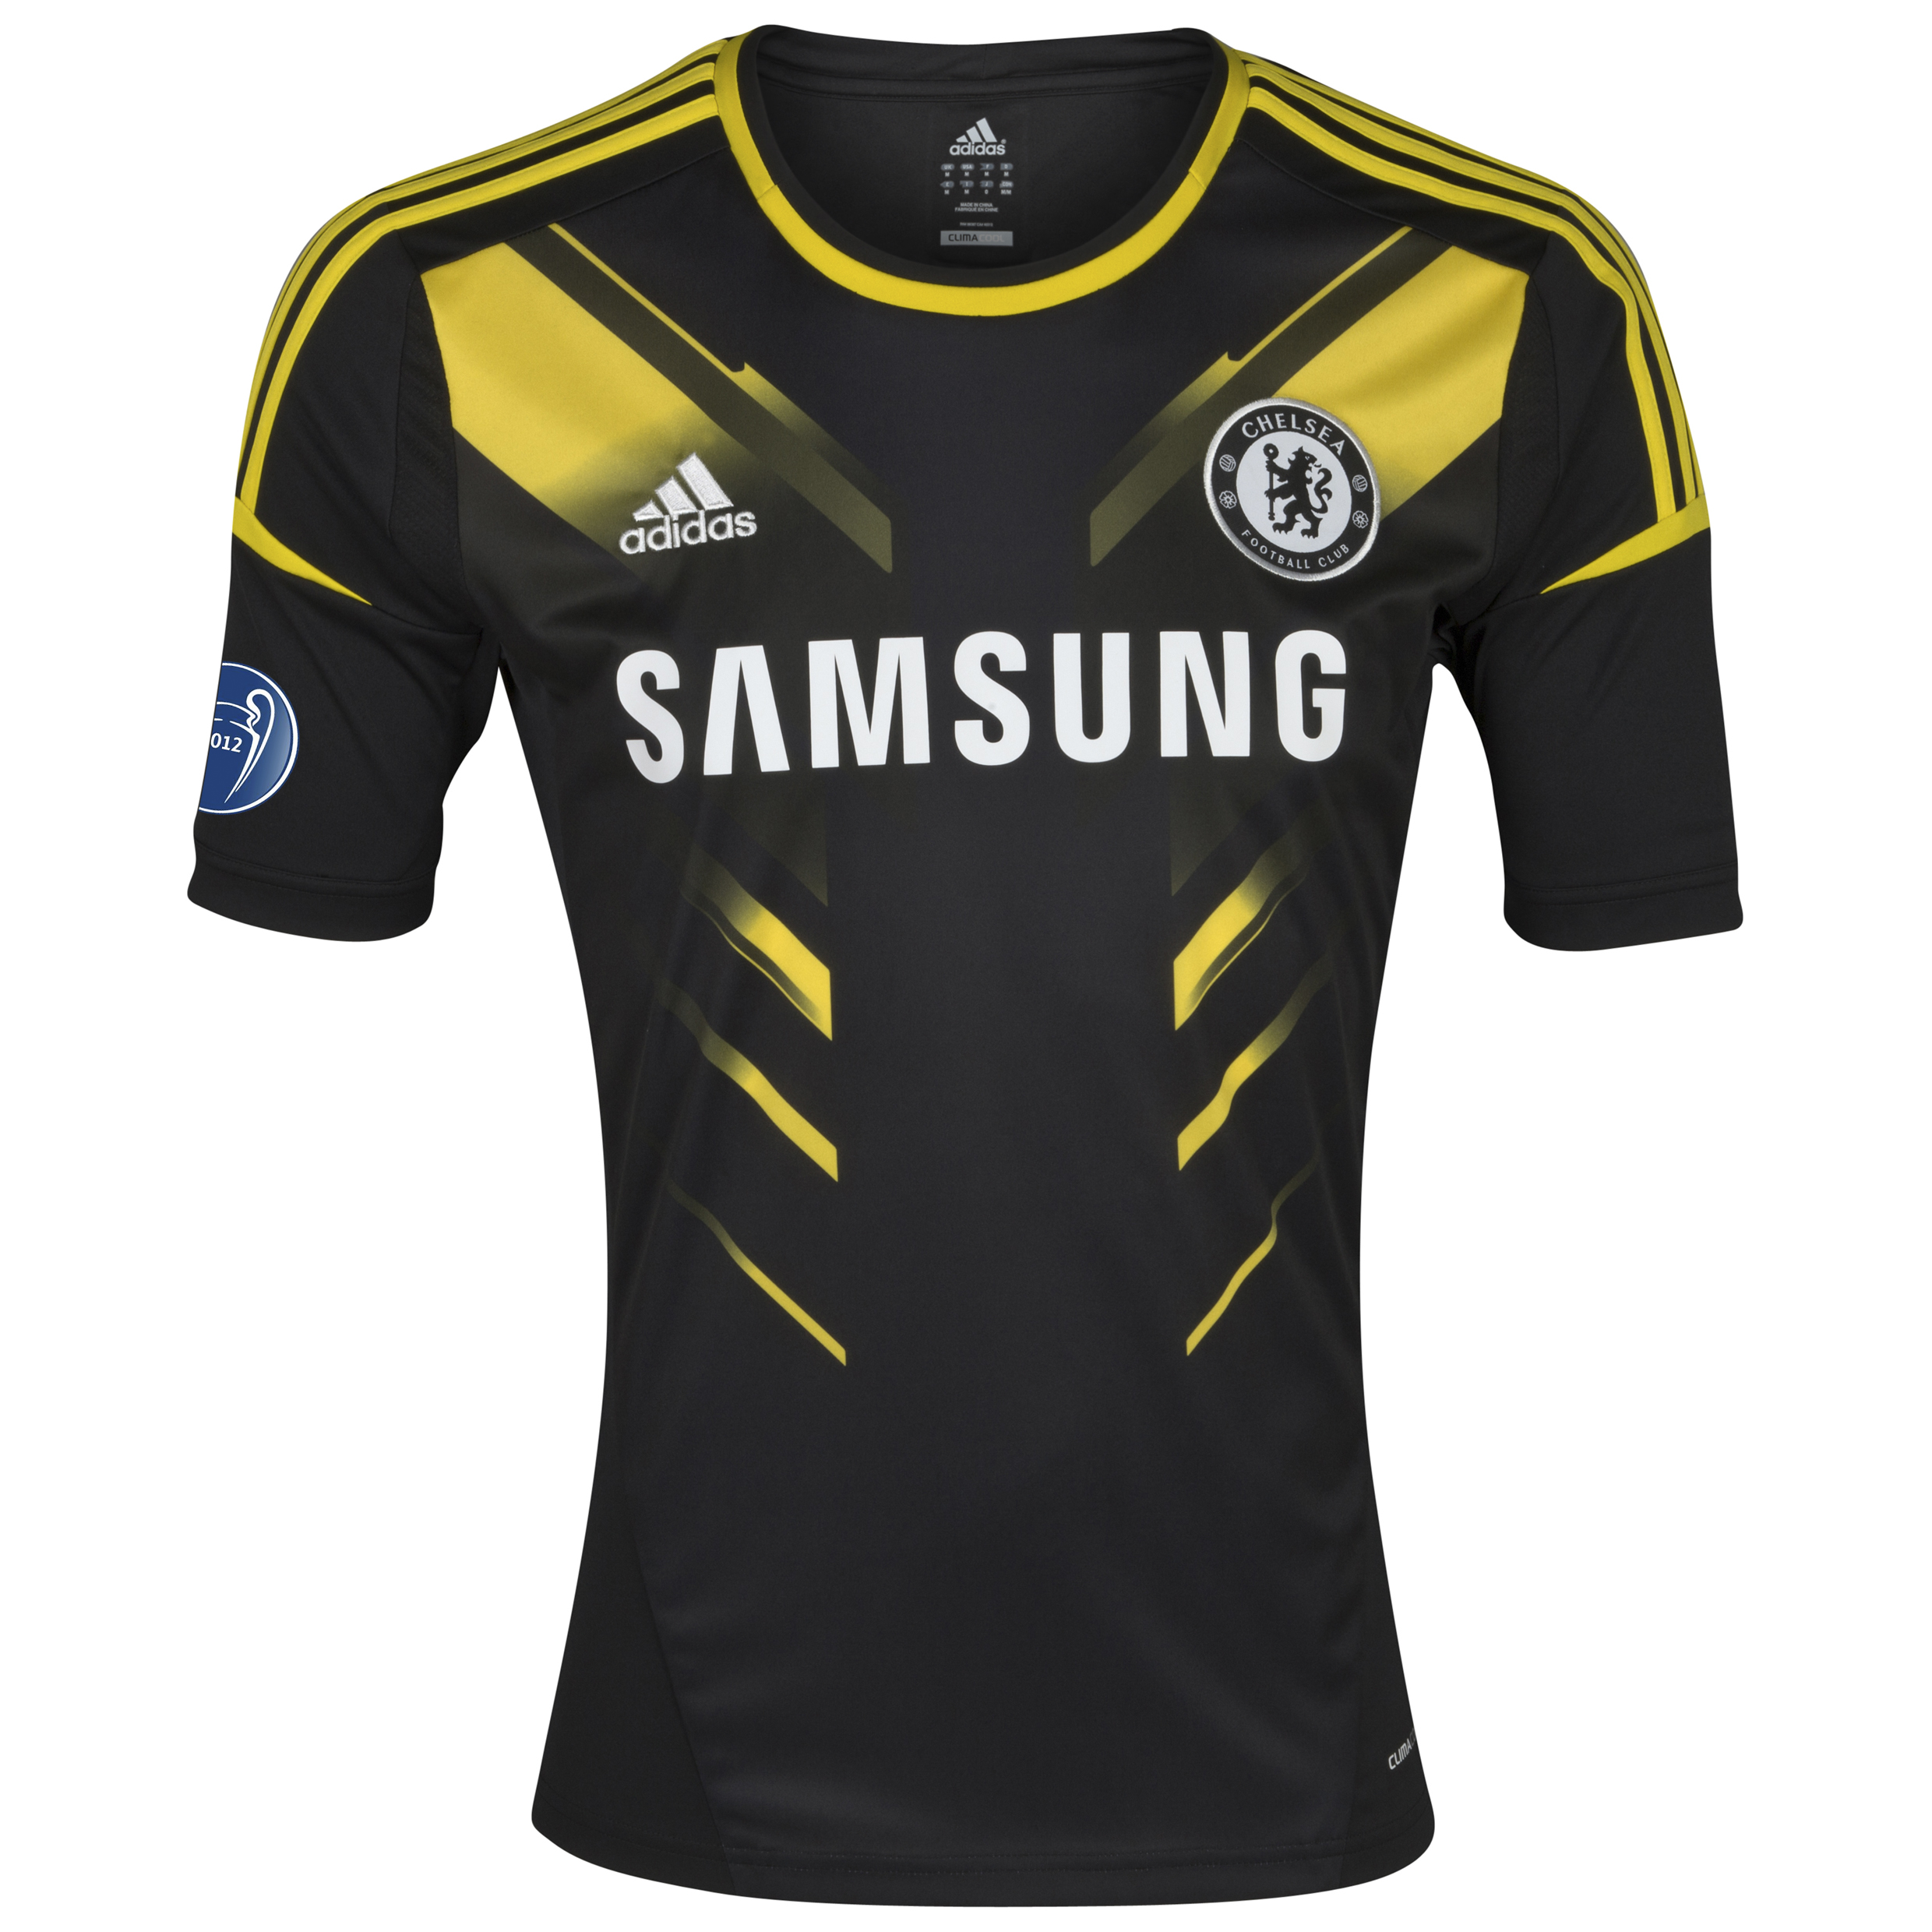 Chelsea UEFA Champions League Third Shirt 2012/13 - Youths with Winners Badge